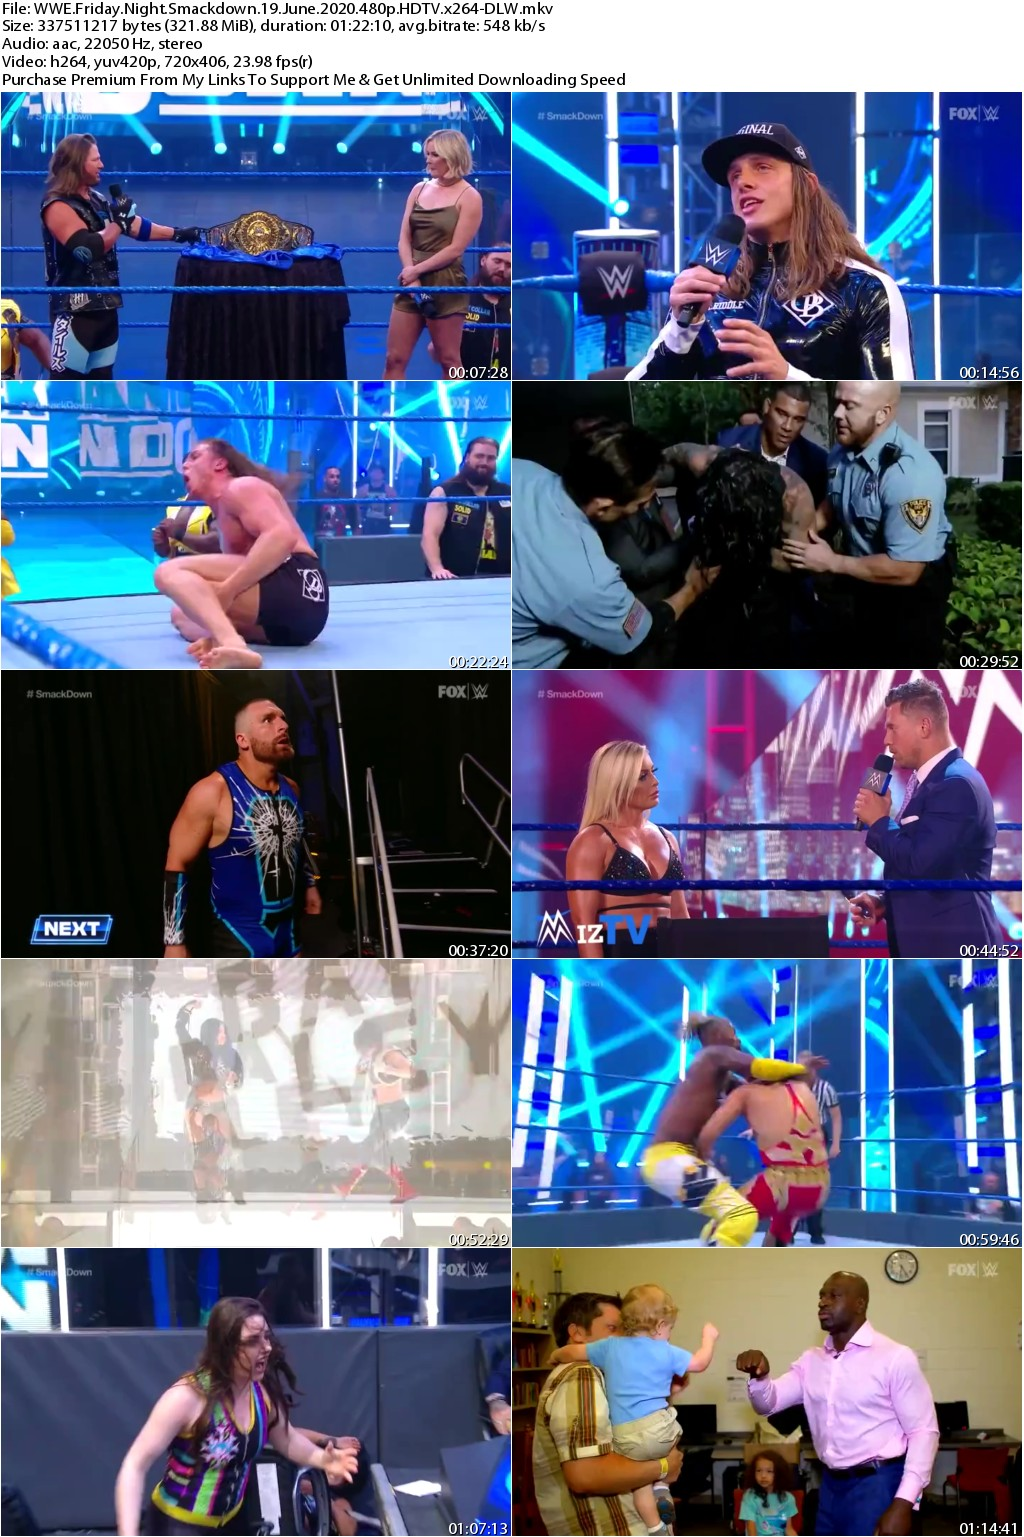 WWE Friday Night Smackdown 19 June 2020 480p HDTV x264-DLW